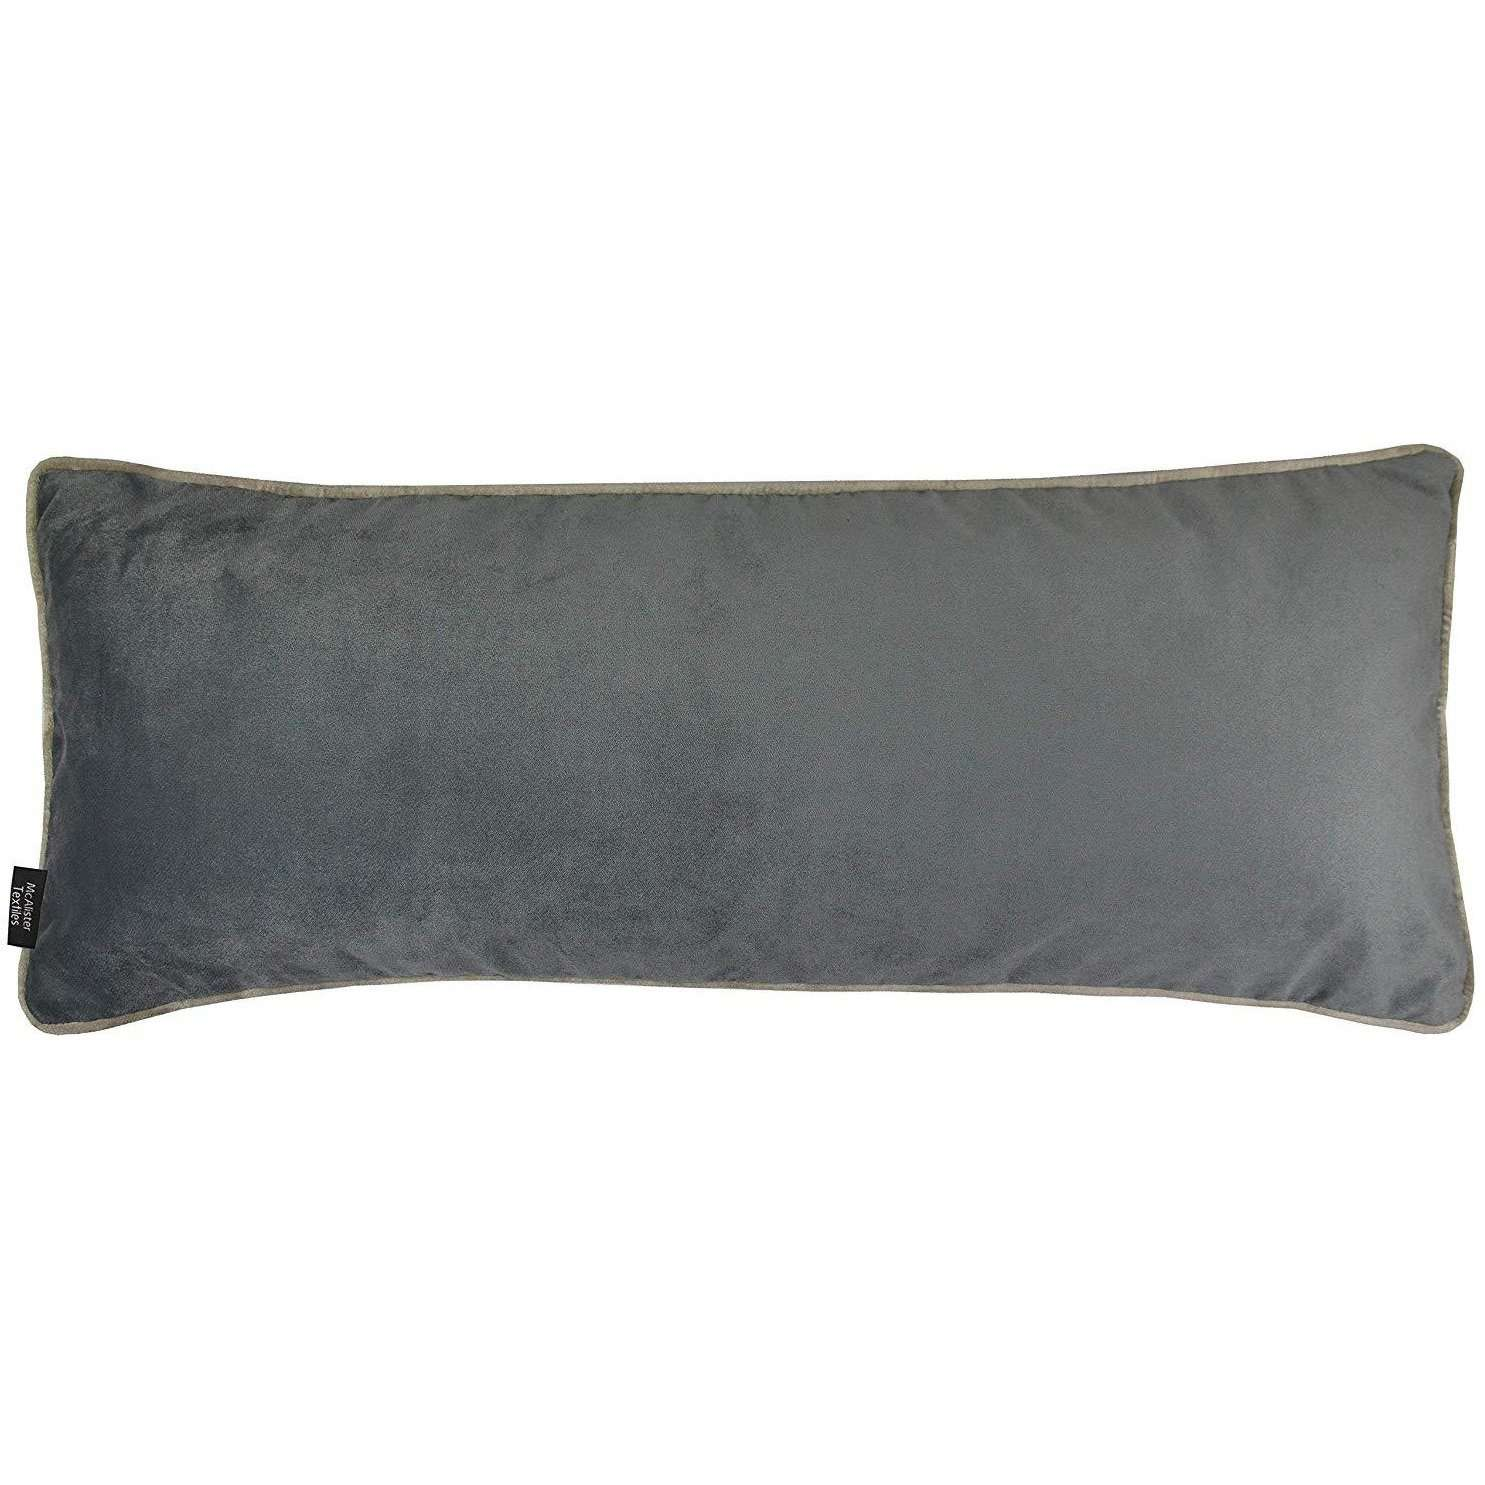 McAlister Textiles Deluxe Velvet Large Charcoal Grey Bed Pillow Large Boudoir Cushions